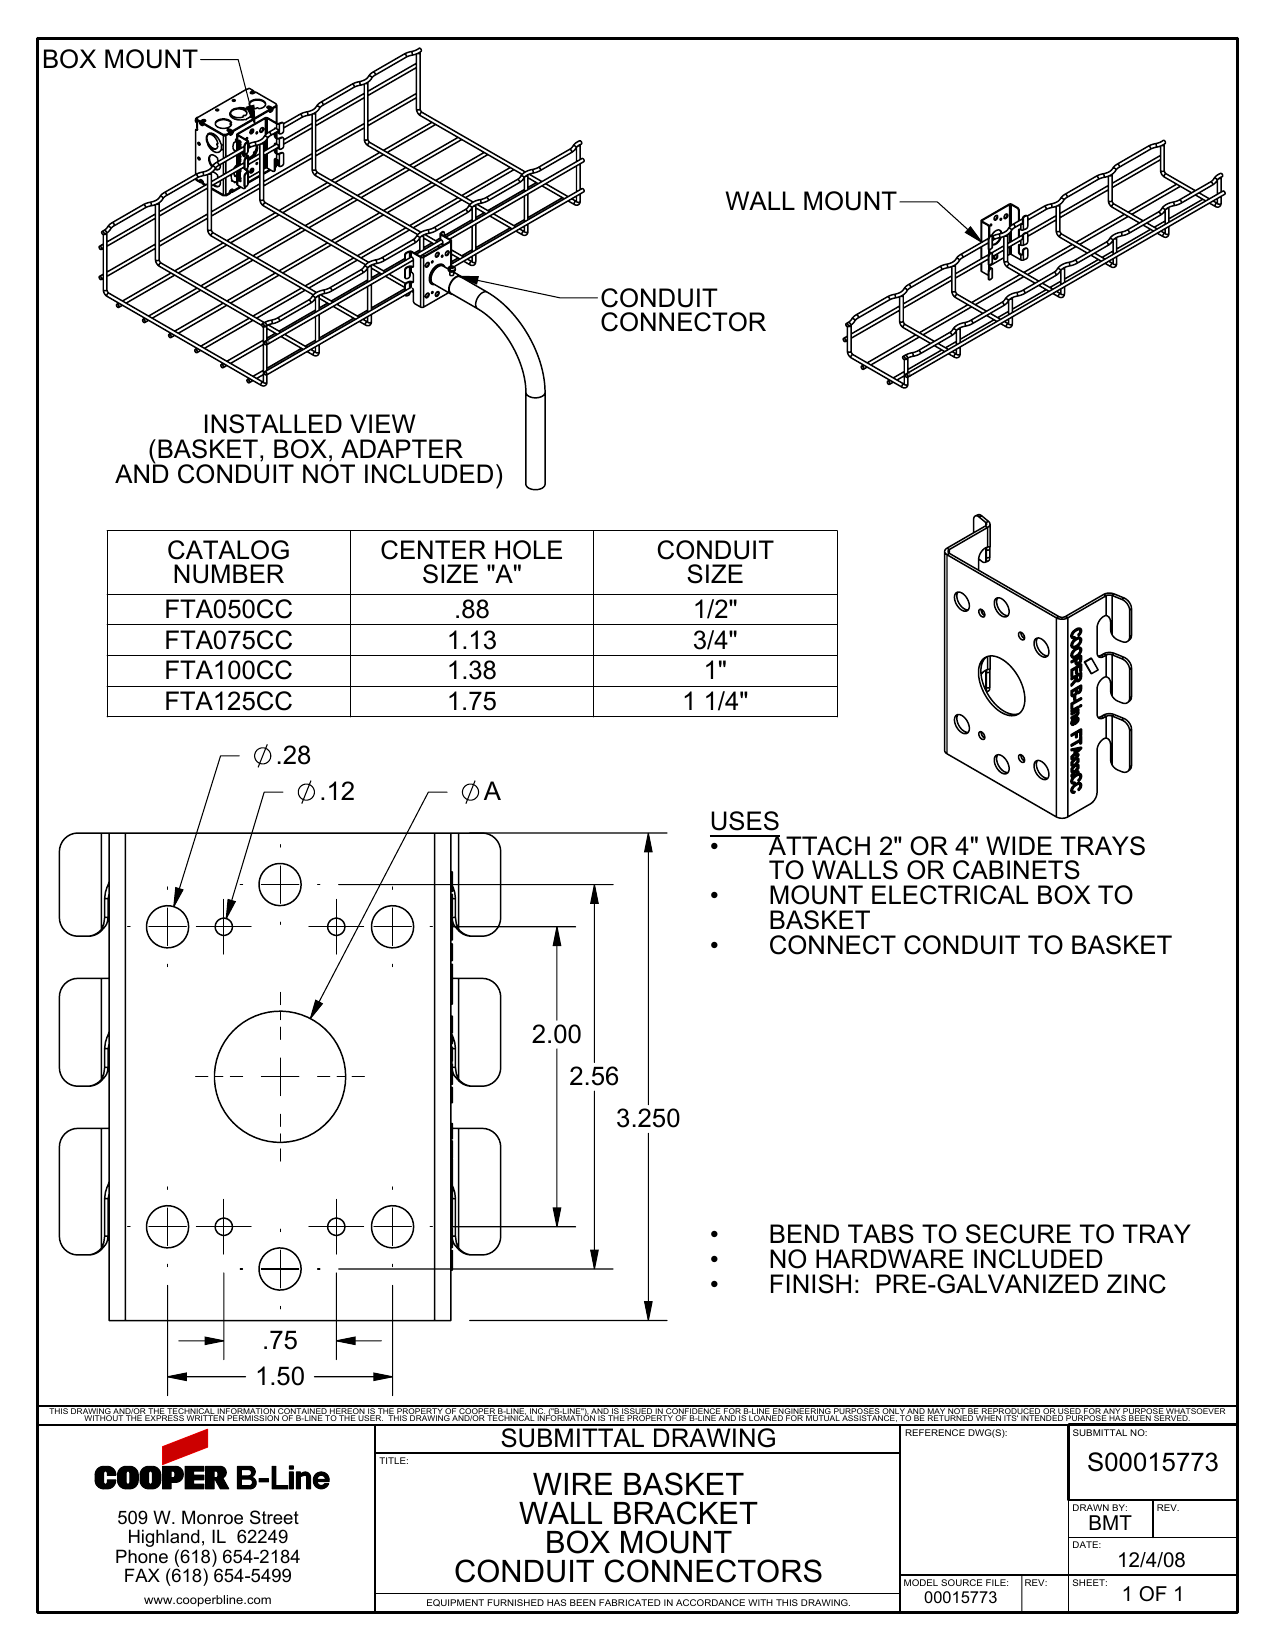 Box Mount Wall Conduit Connector Telephone Wiring Diagram For